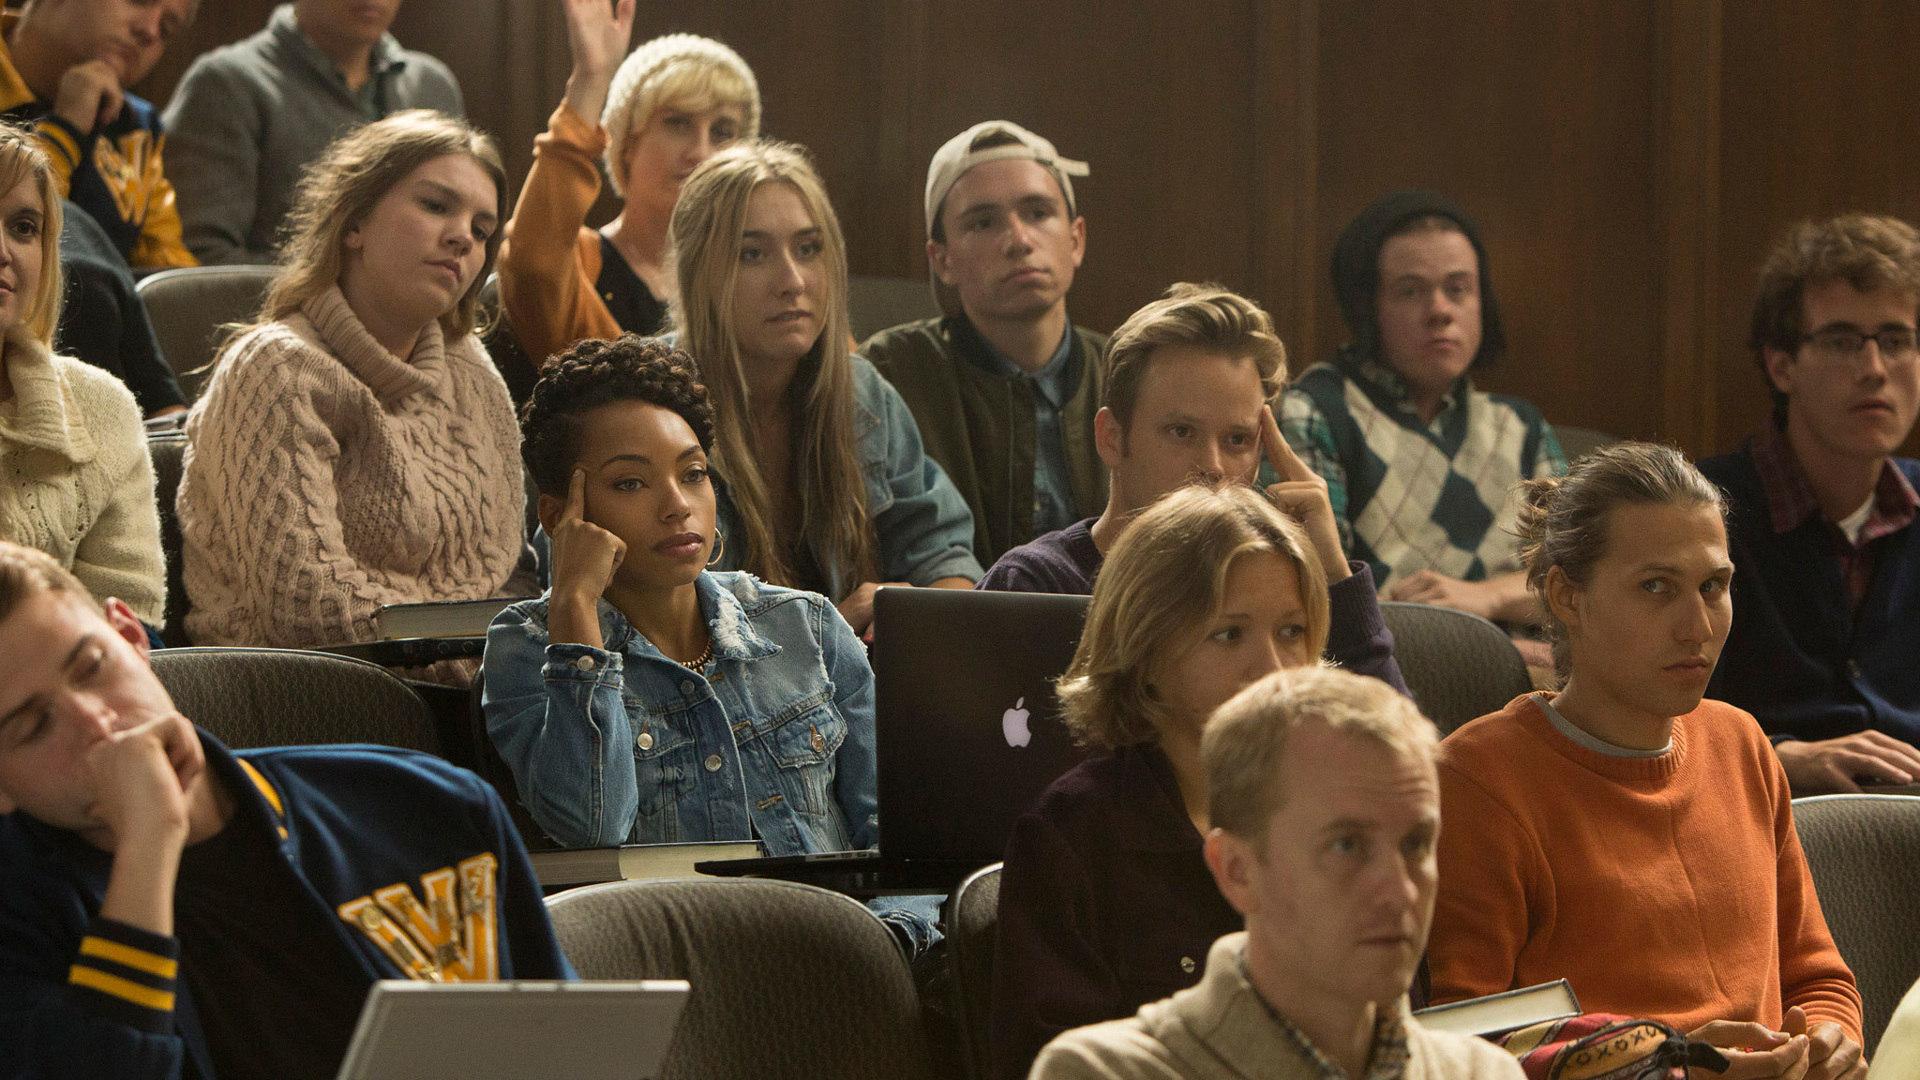 the interaction of different college groups in dear white people